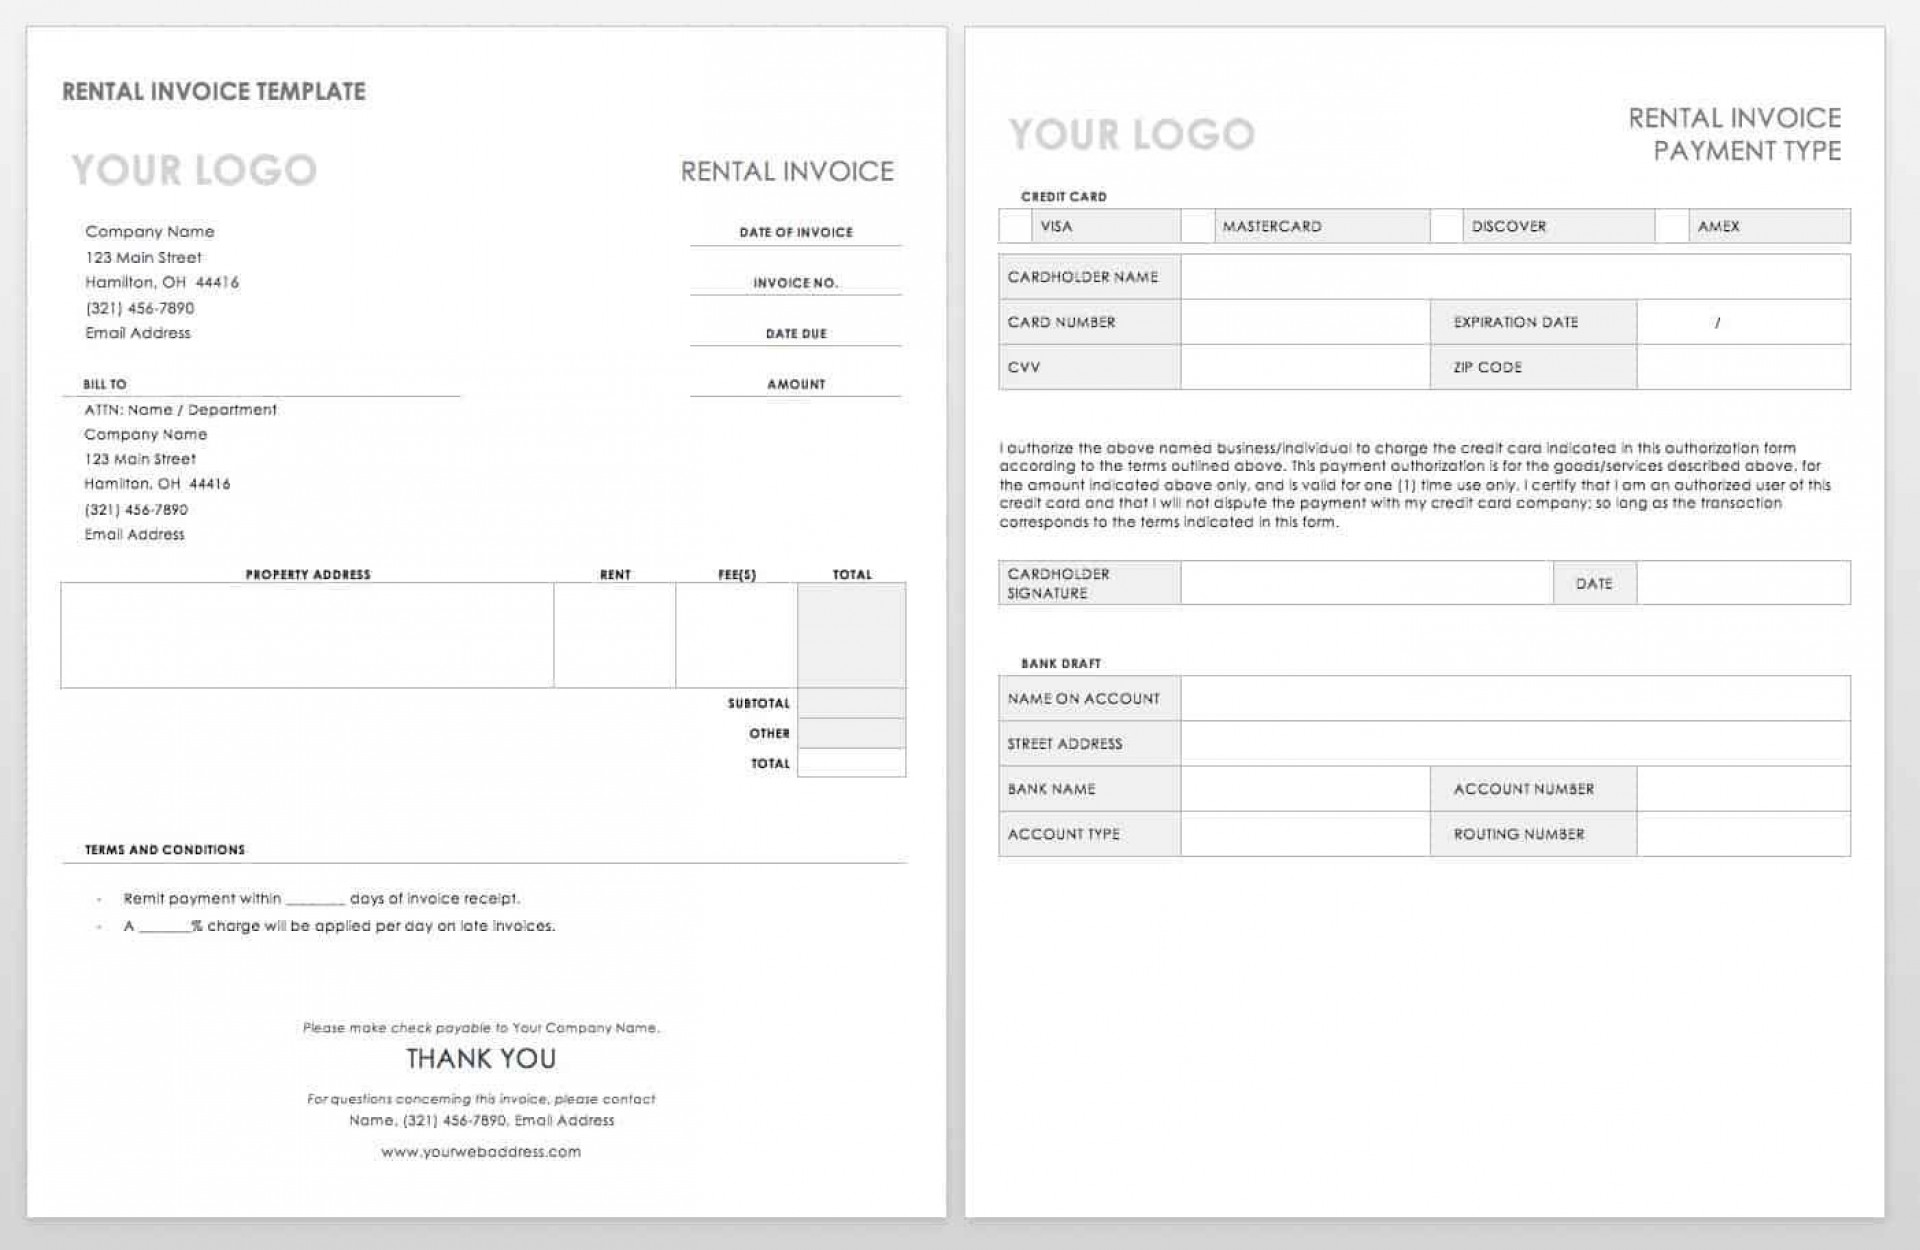 004 Simple Word Invoice Template Free High Resolution  M Download1920